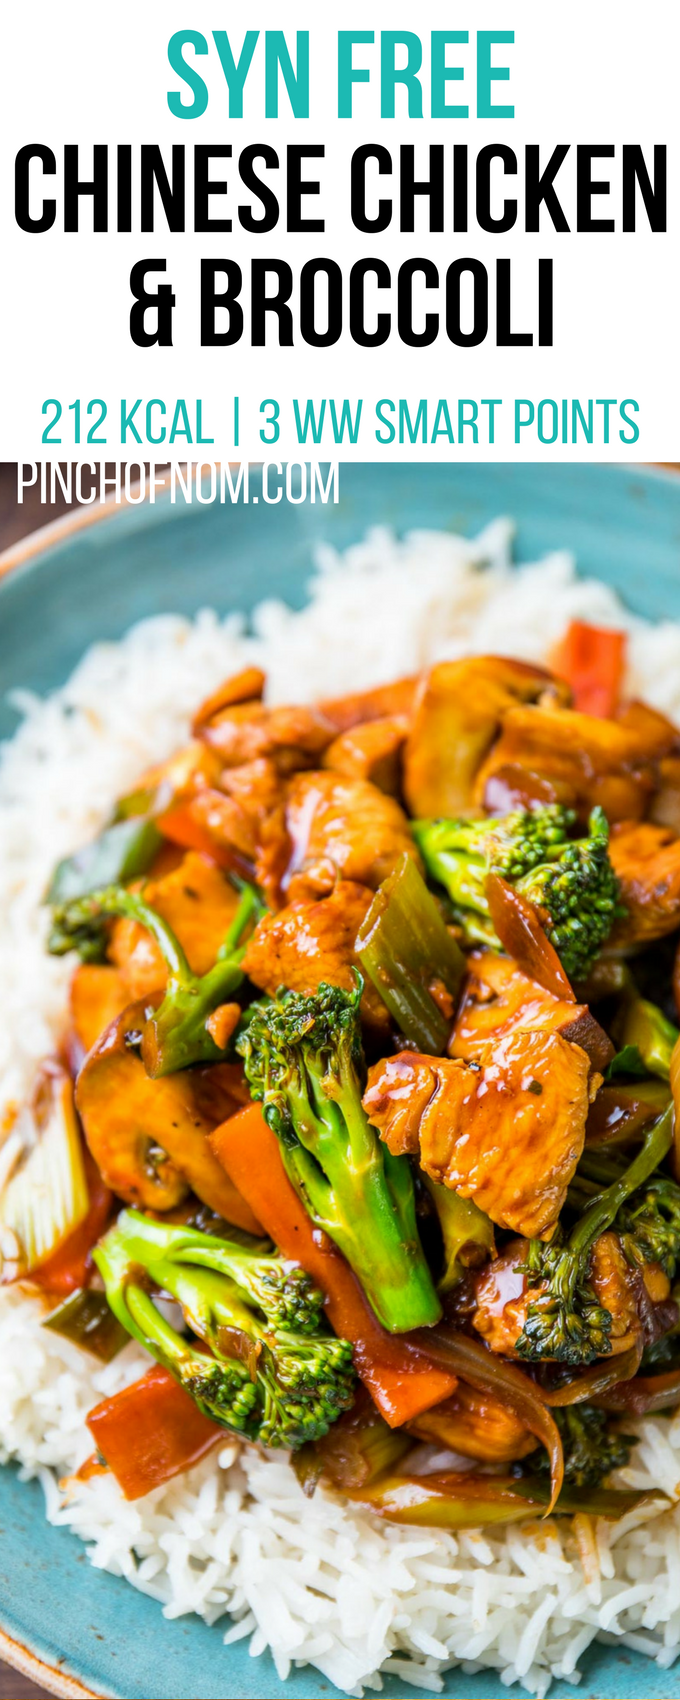 Syn free chinese chicken and broccoli pinch of nom slimming world syn free chinese chicken and broccoli pinch of nom slimming world recipes 212 kcal syn free forumfinder Image collections